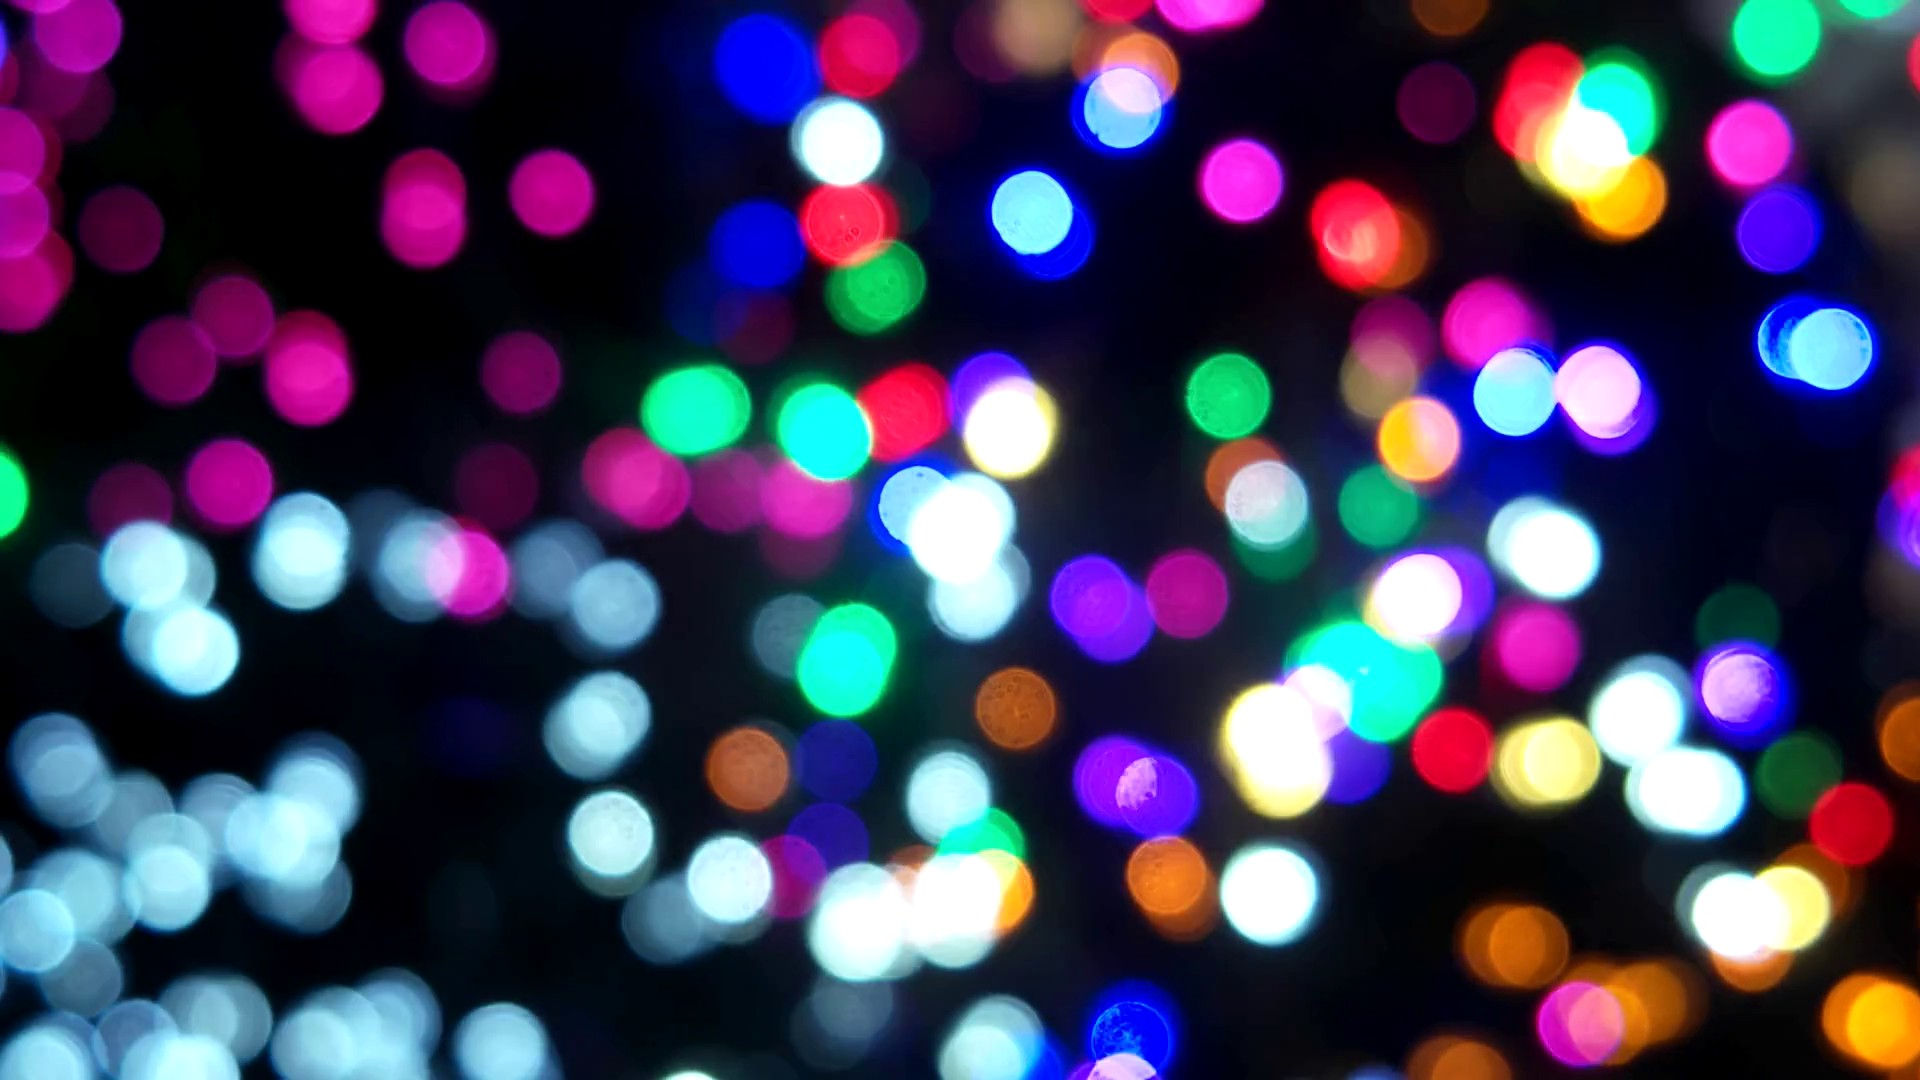 Bokeh background ·① Download free awesome wallpapers for ...